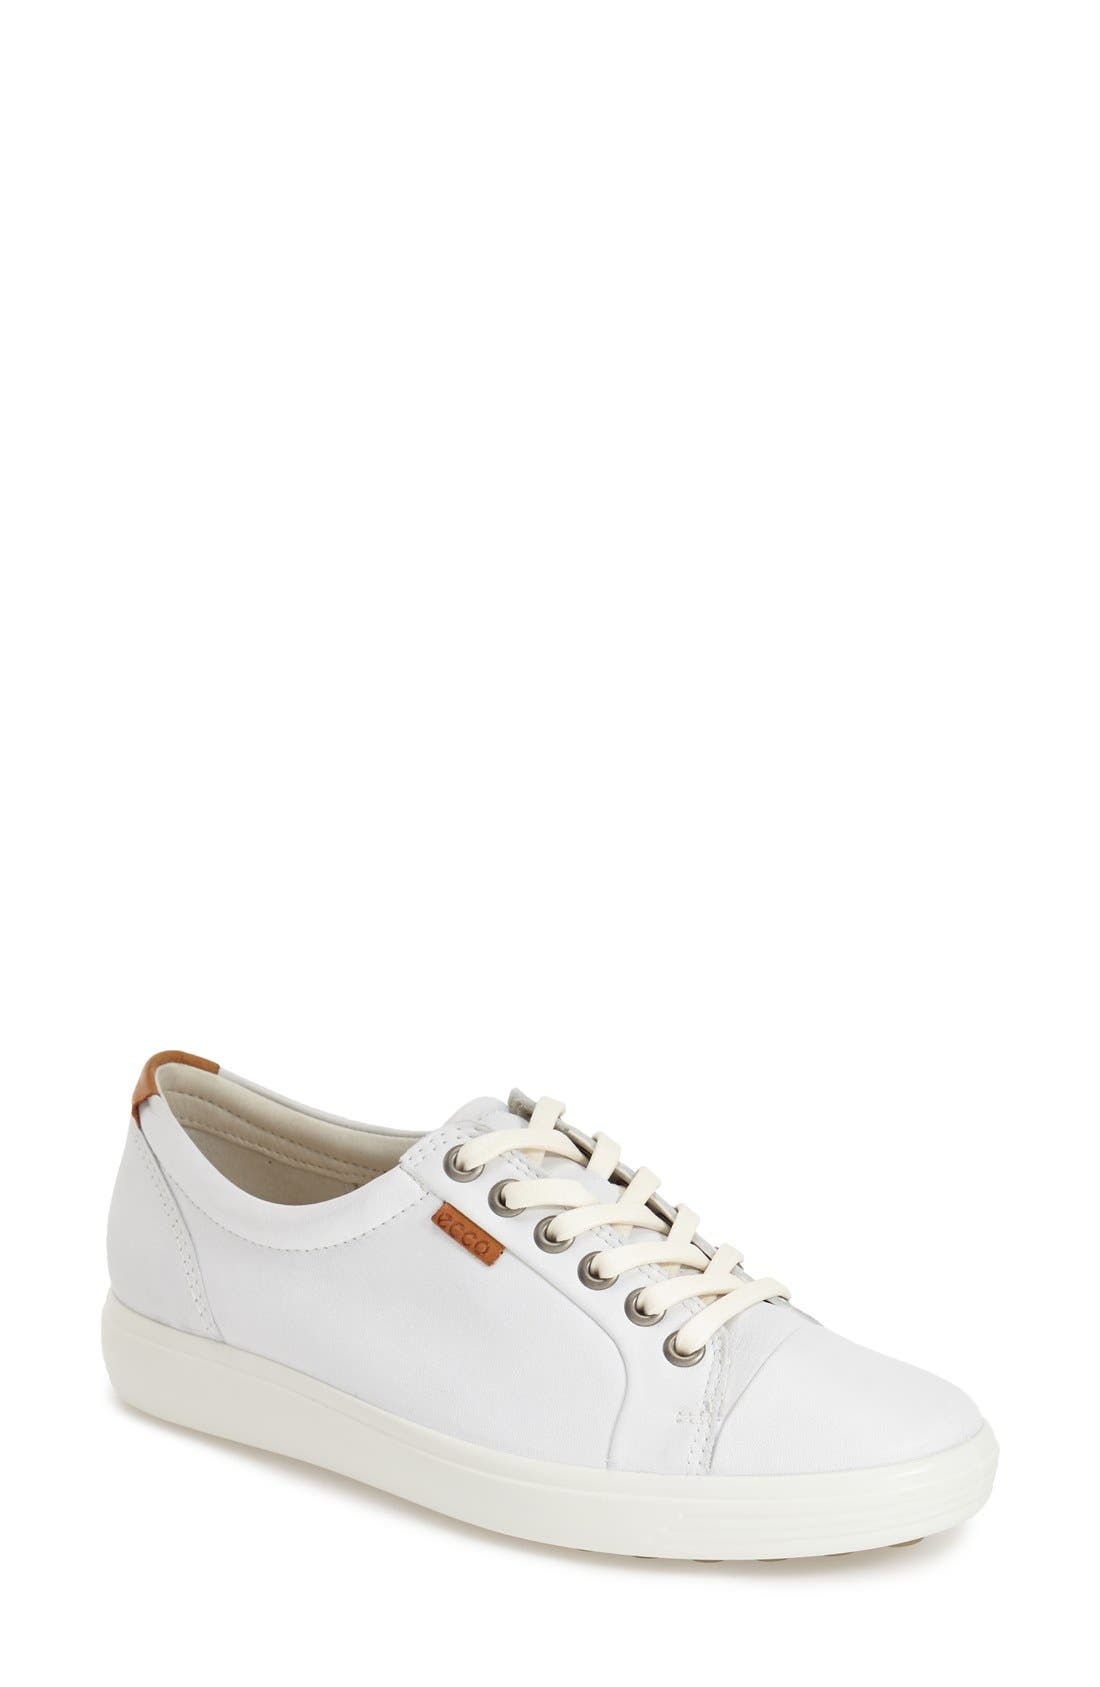 'Soft 7' Cap Toe Sneaker,                             Main thumbnail 1, color,                             White